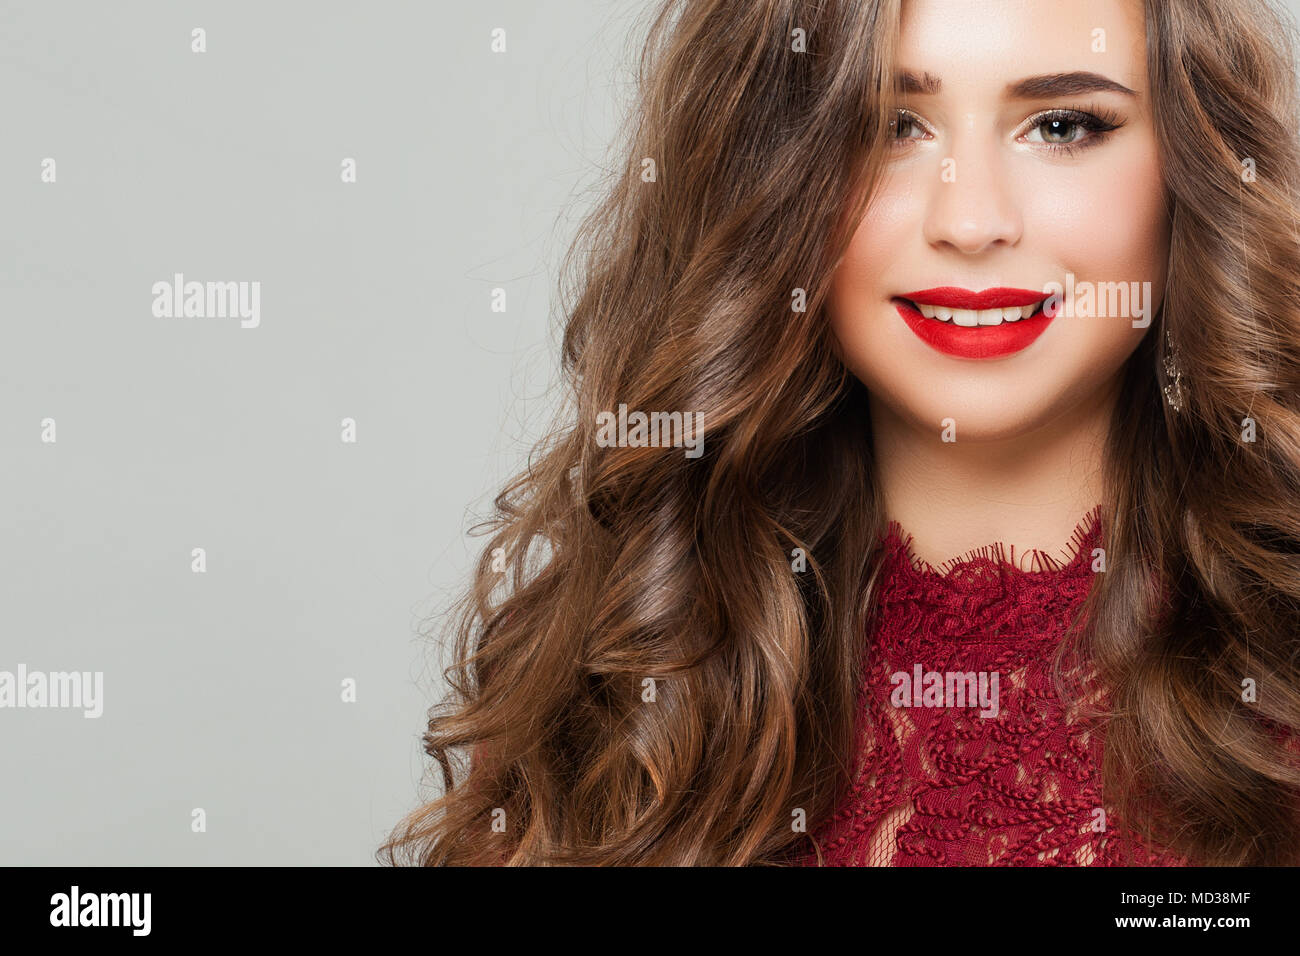 Young Woman with Long Healthy Permed Hair. Portrait of Cute Smiling Girl Fashion Model with Red Lips Makeup Stock Photo